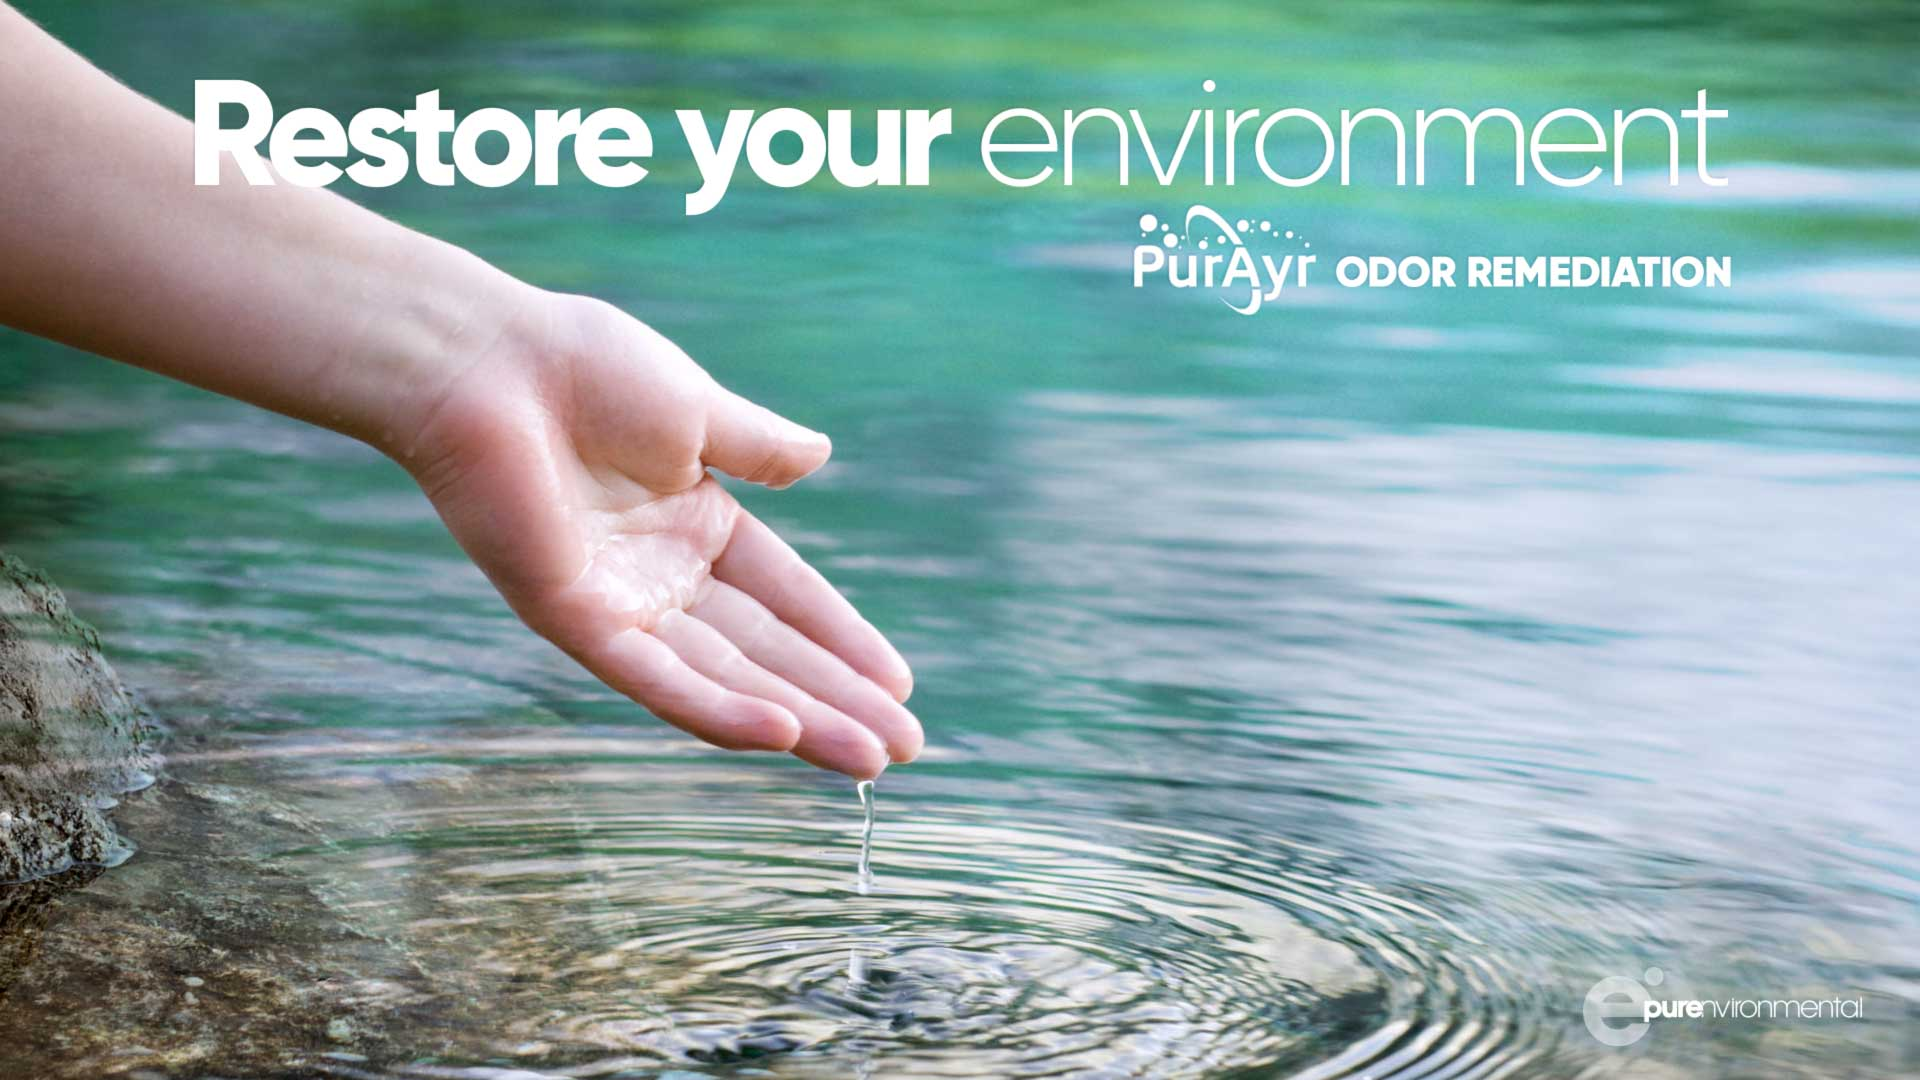 Restore Your Environment PurAyr Odor Remediation